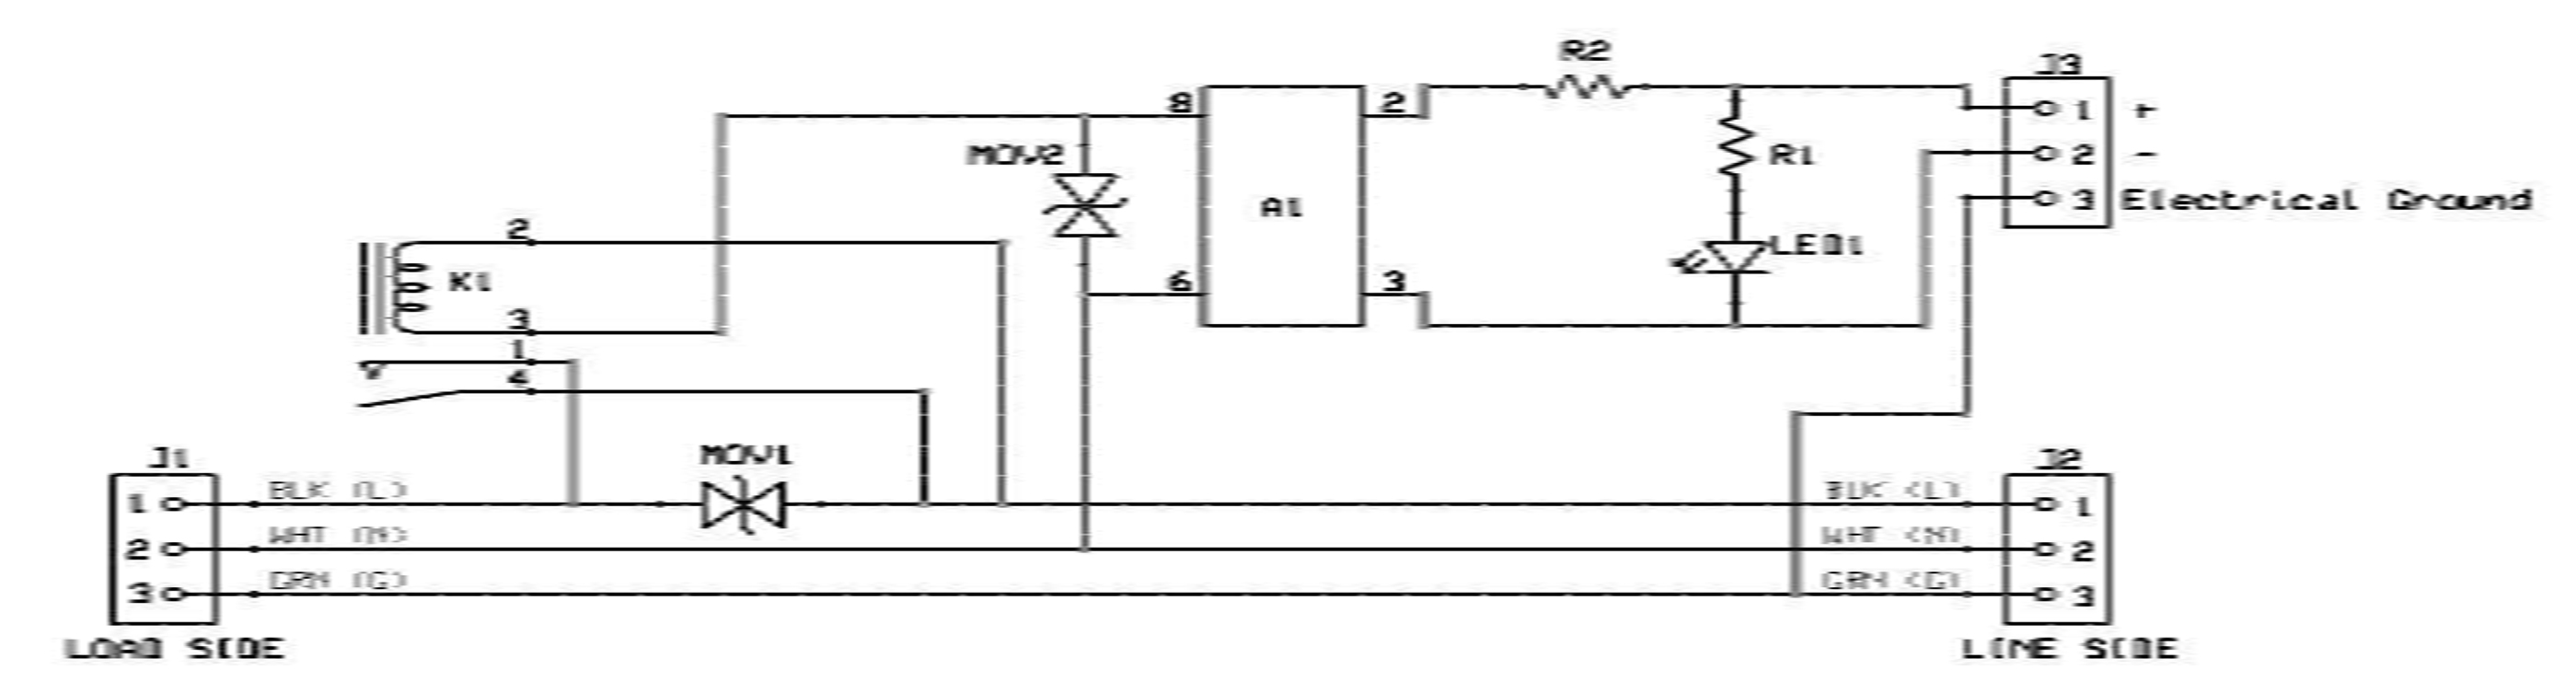 Drivers Relays And Solid State Mbed Positions Of The Switch Battery Were Swapped In Circuit Power Tail Ii Schematic